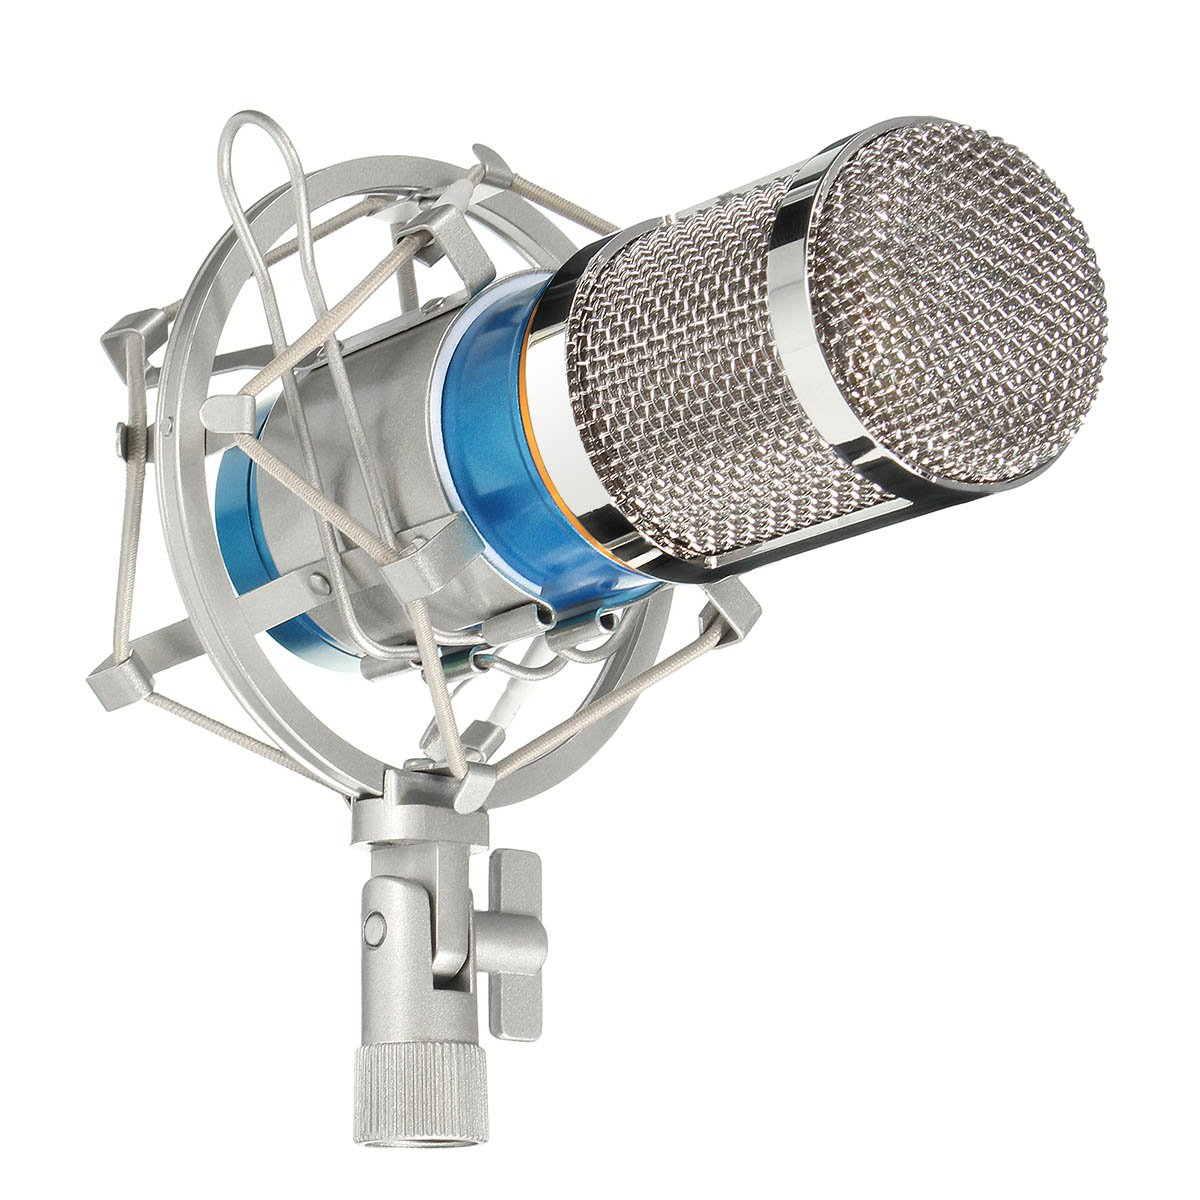 Condenser Microphone, M.Way Studio Broadcasting Vocal Recording Microphone KTV Mic with Shock Mount, Audio Cord, Foam Cap For Sounds Recording, Interview, Home, Stage, Music Insturments Blue M.WAYFirstmore1853